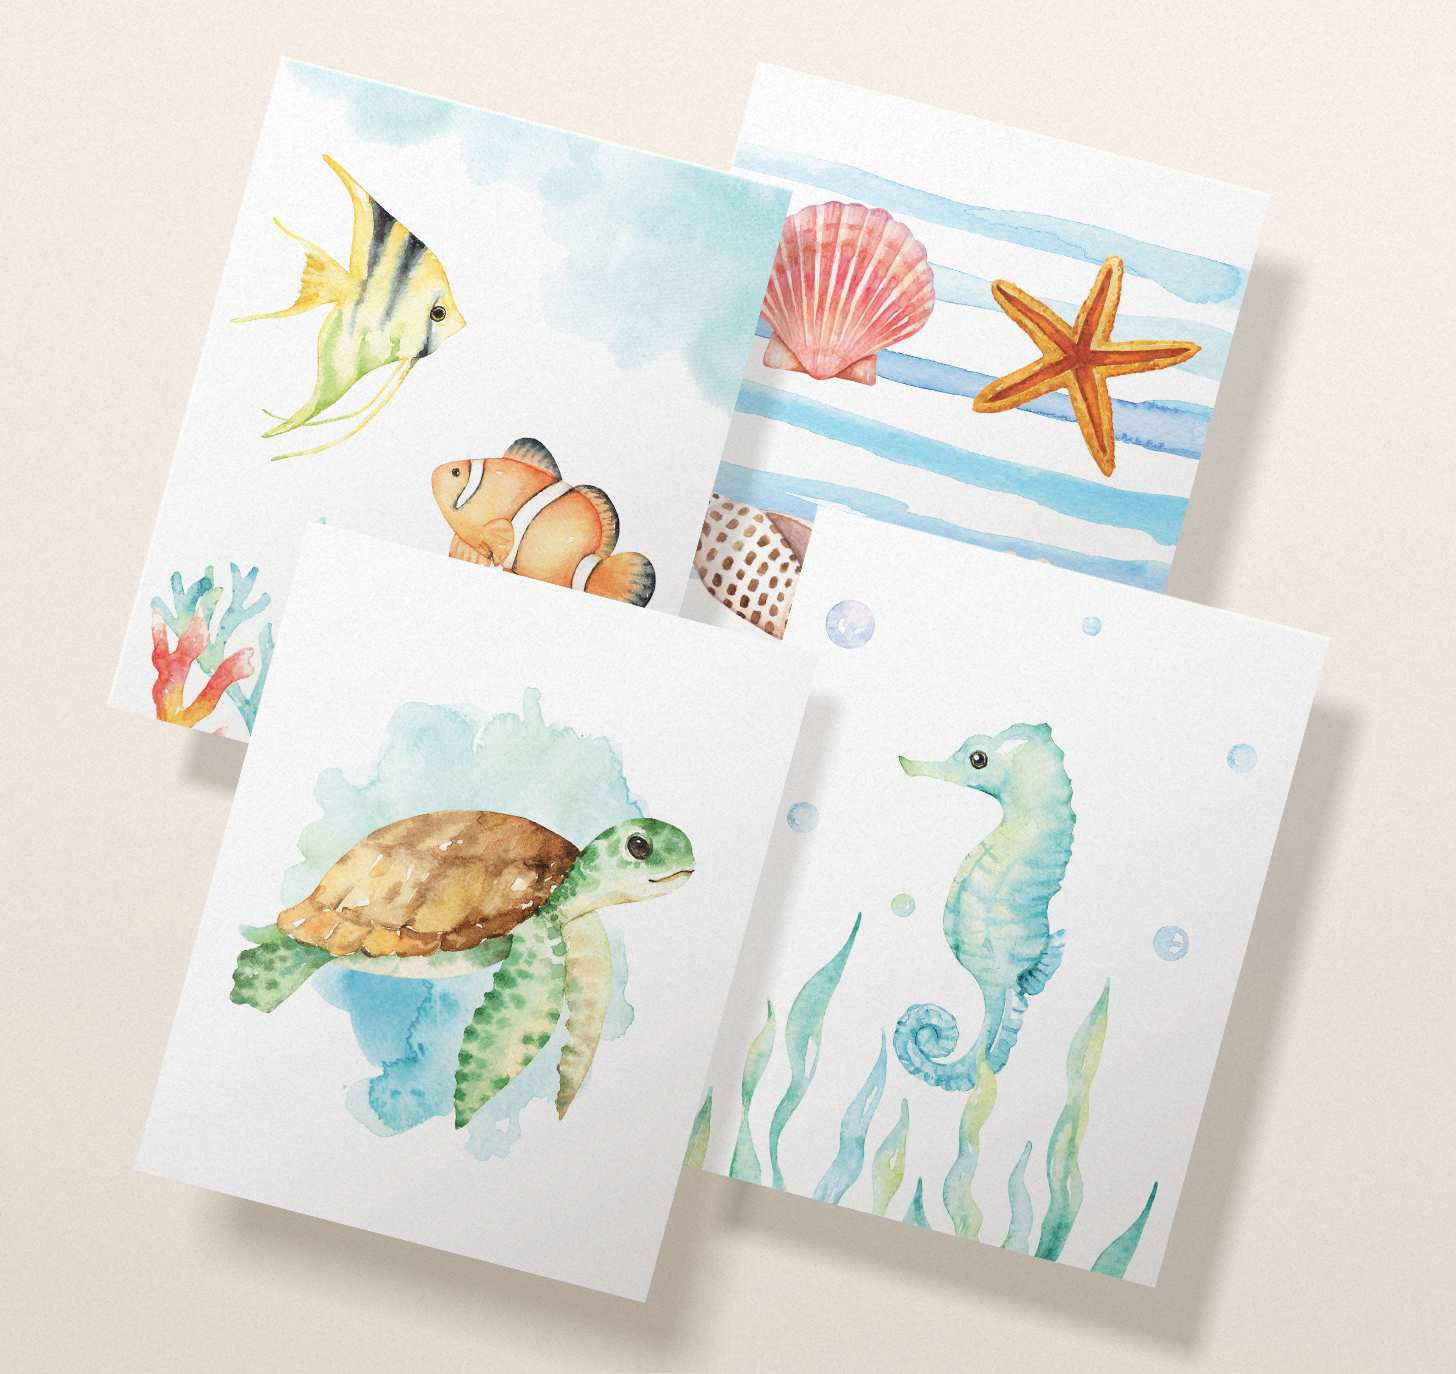 Four overlapping cards with watercolor seashells, sea turtle, fish, and seahorse designs